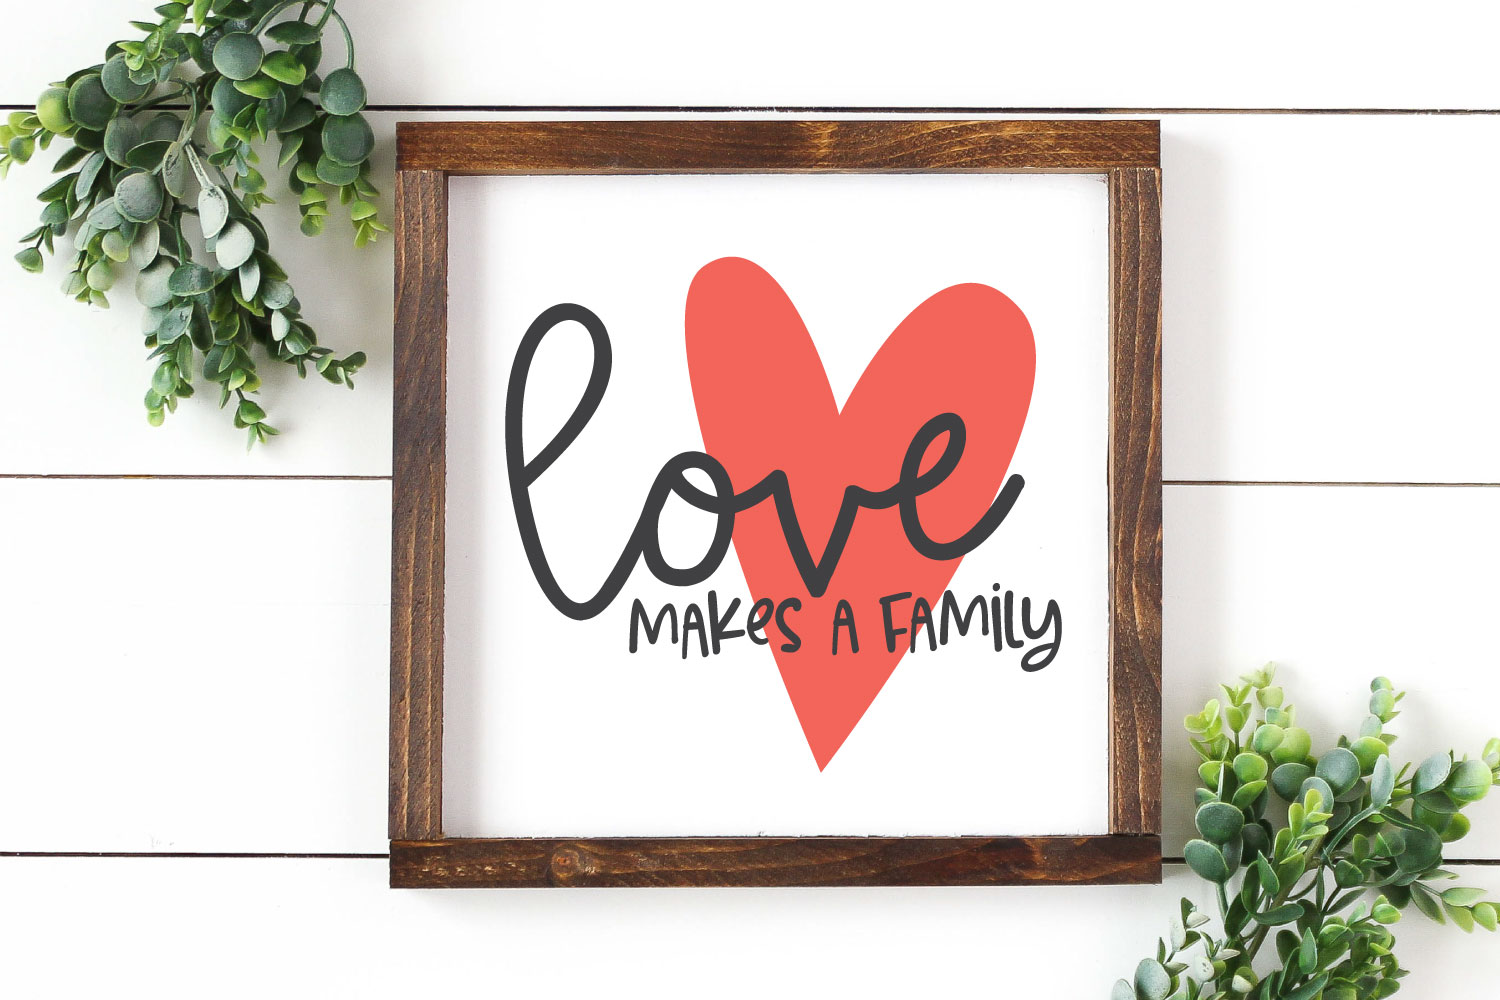 Love Makes a Family SVG on home decor sign with greenery